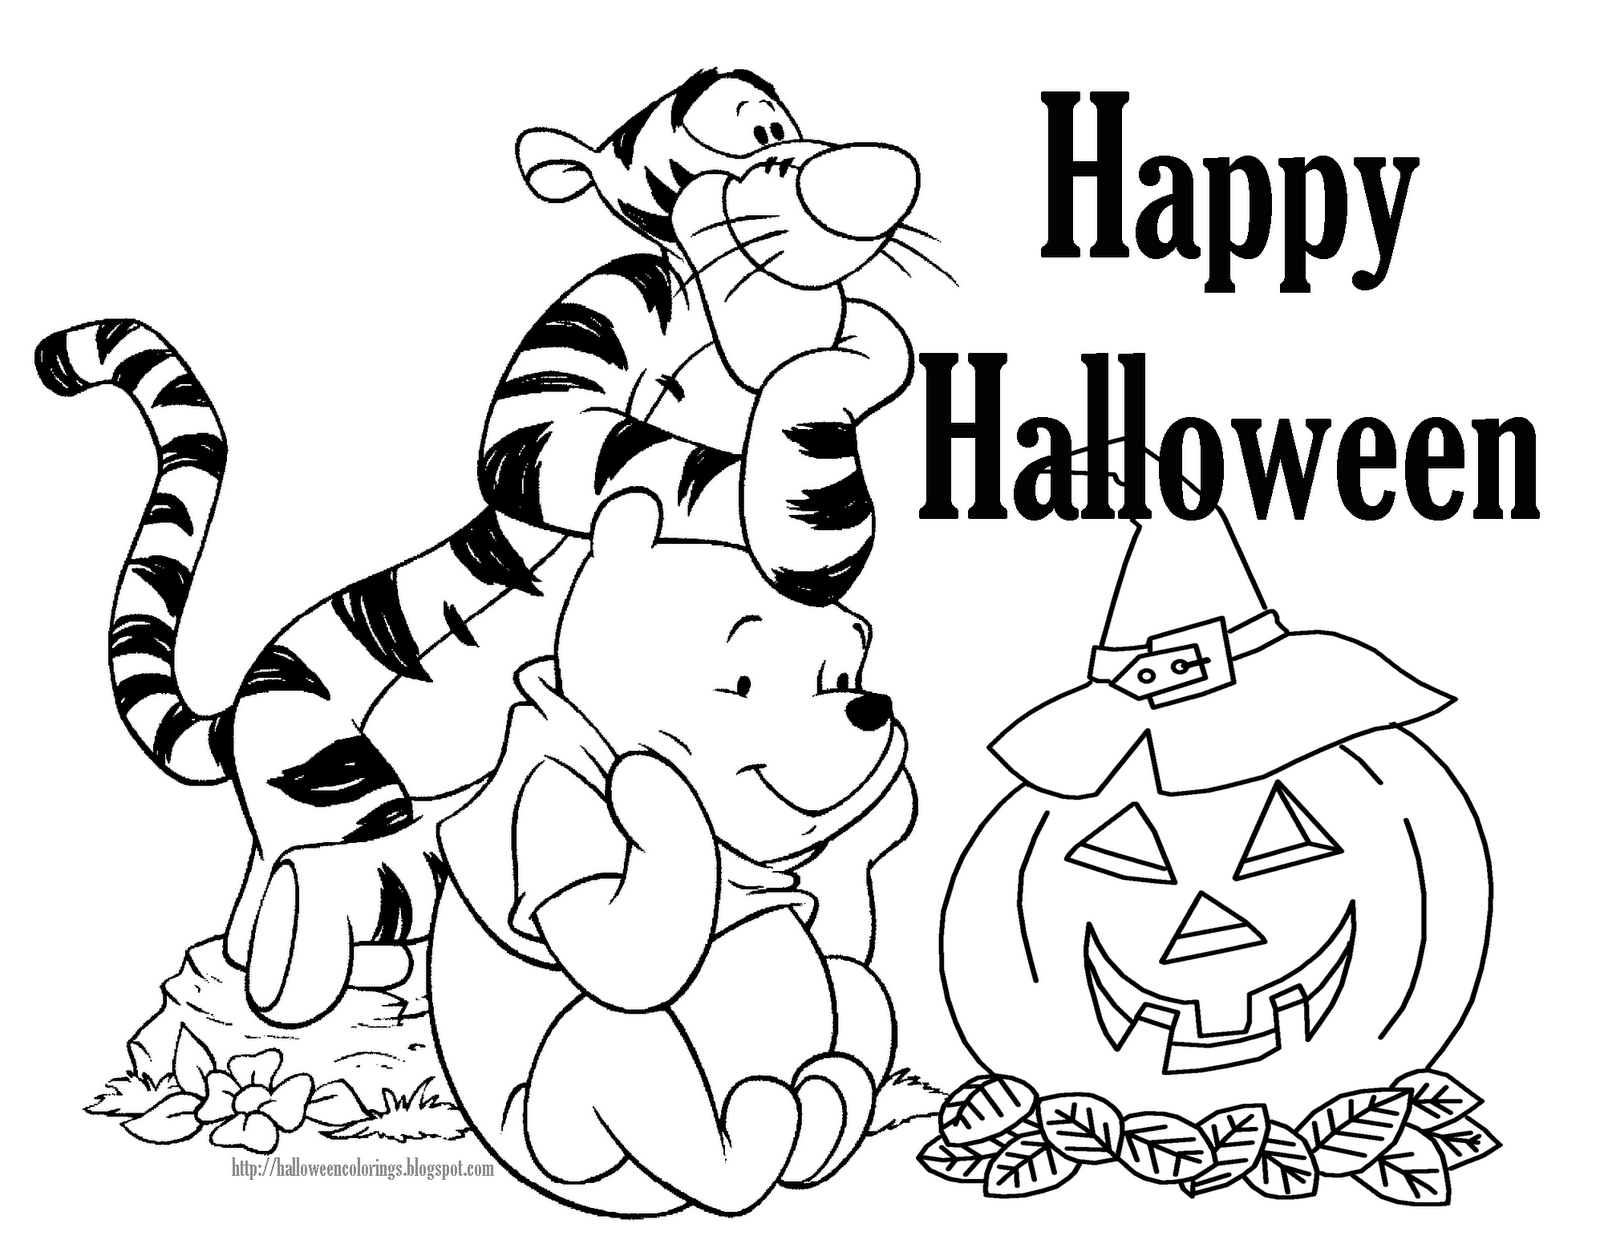 Coloring Pages Kid Halloween Coloring Pages free disney halloween coloring pages lovebugs and postcards pages